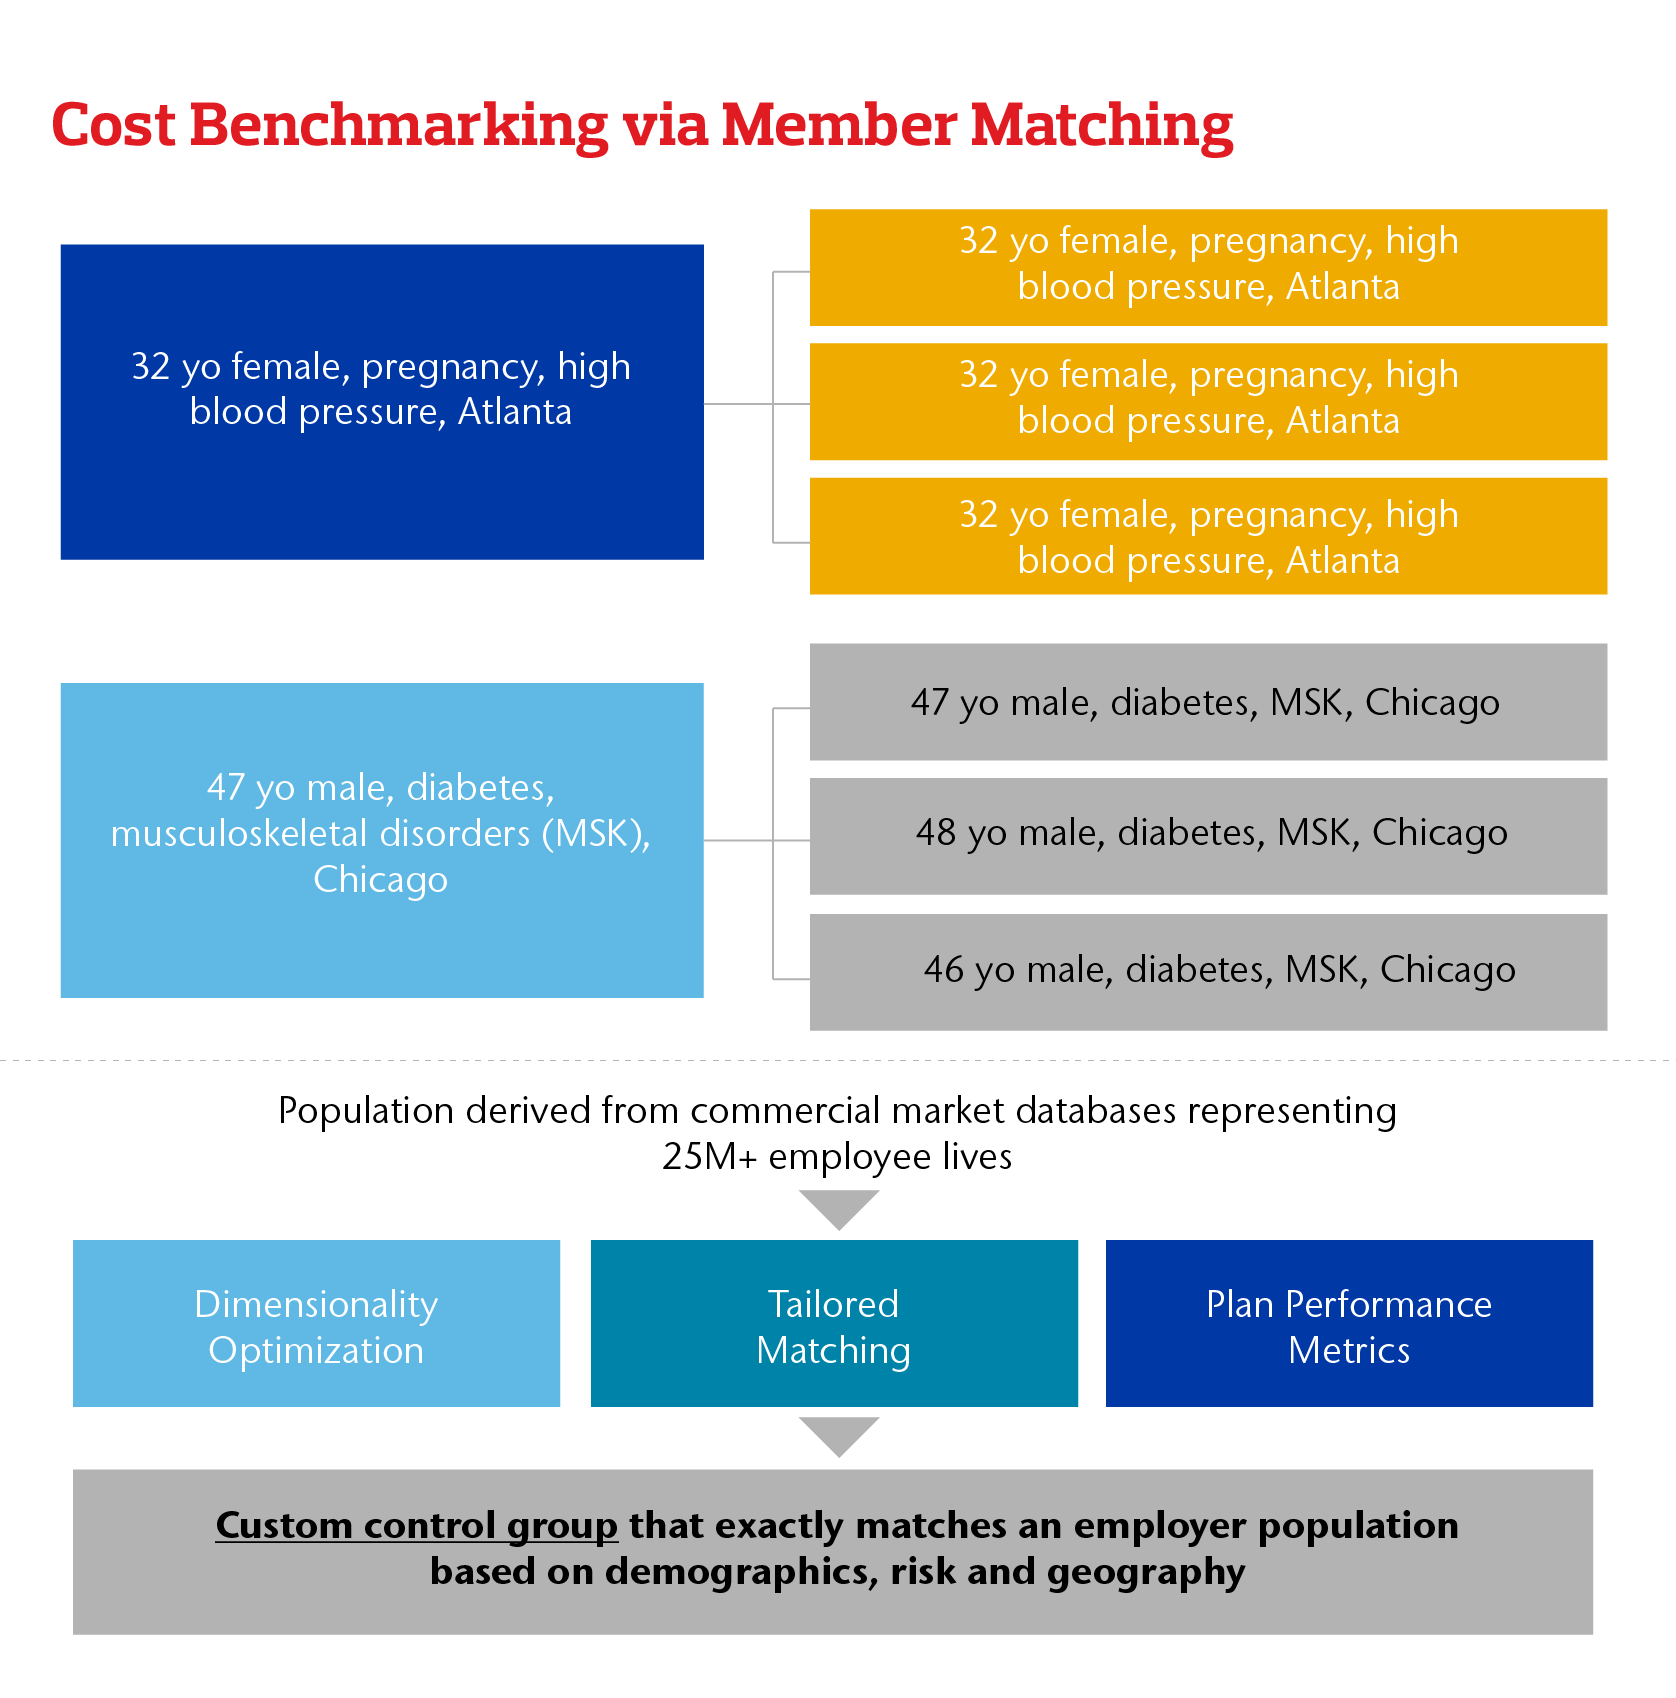 Cost Benchmarking via Member Matching Chart